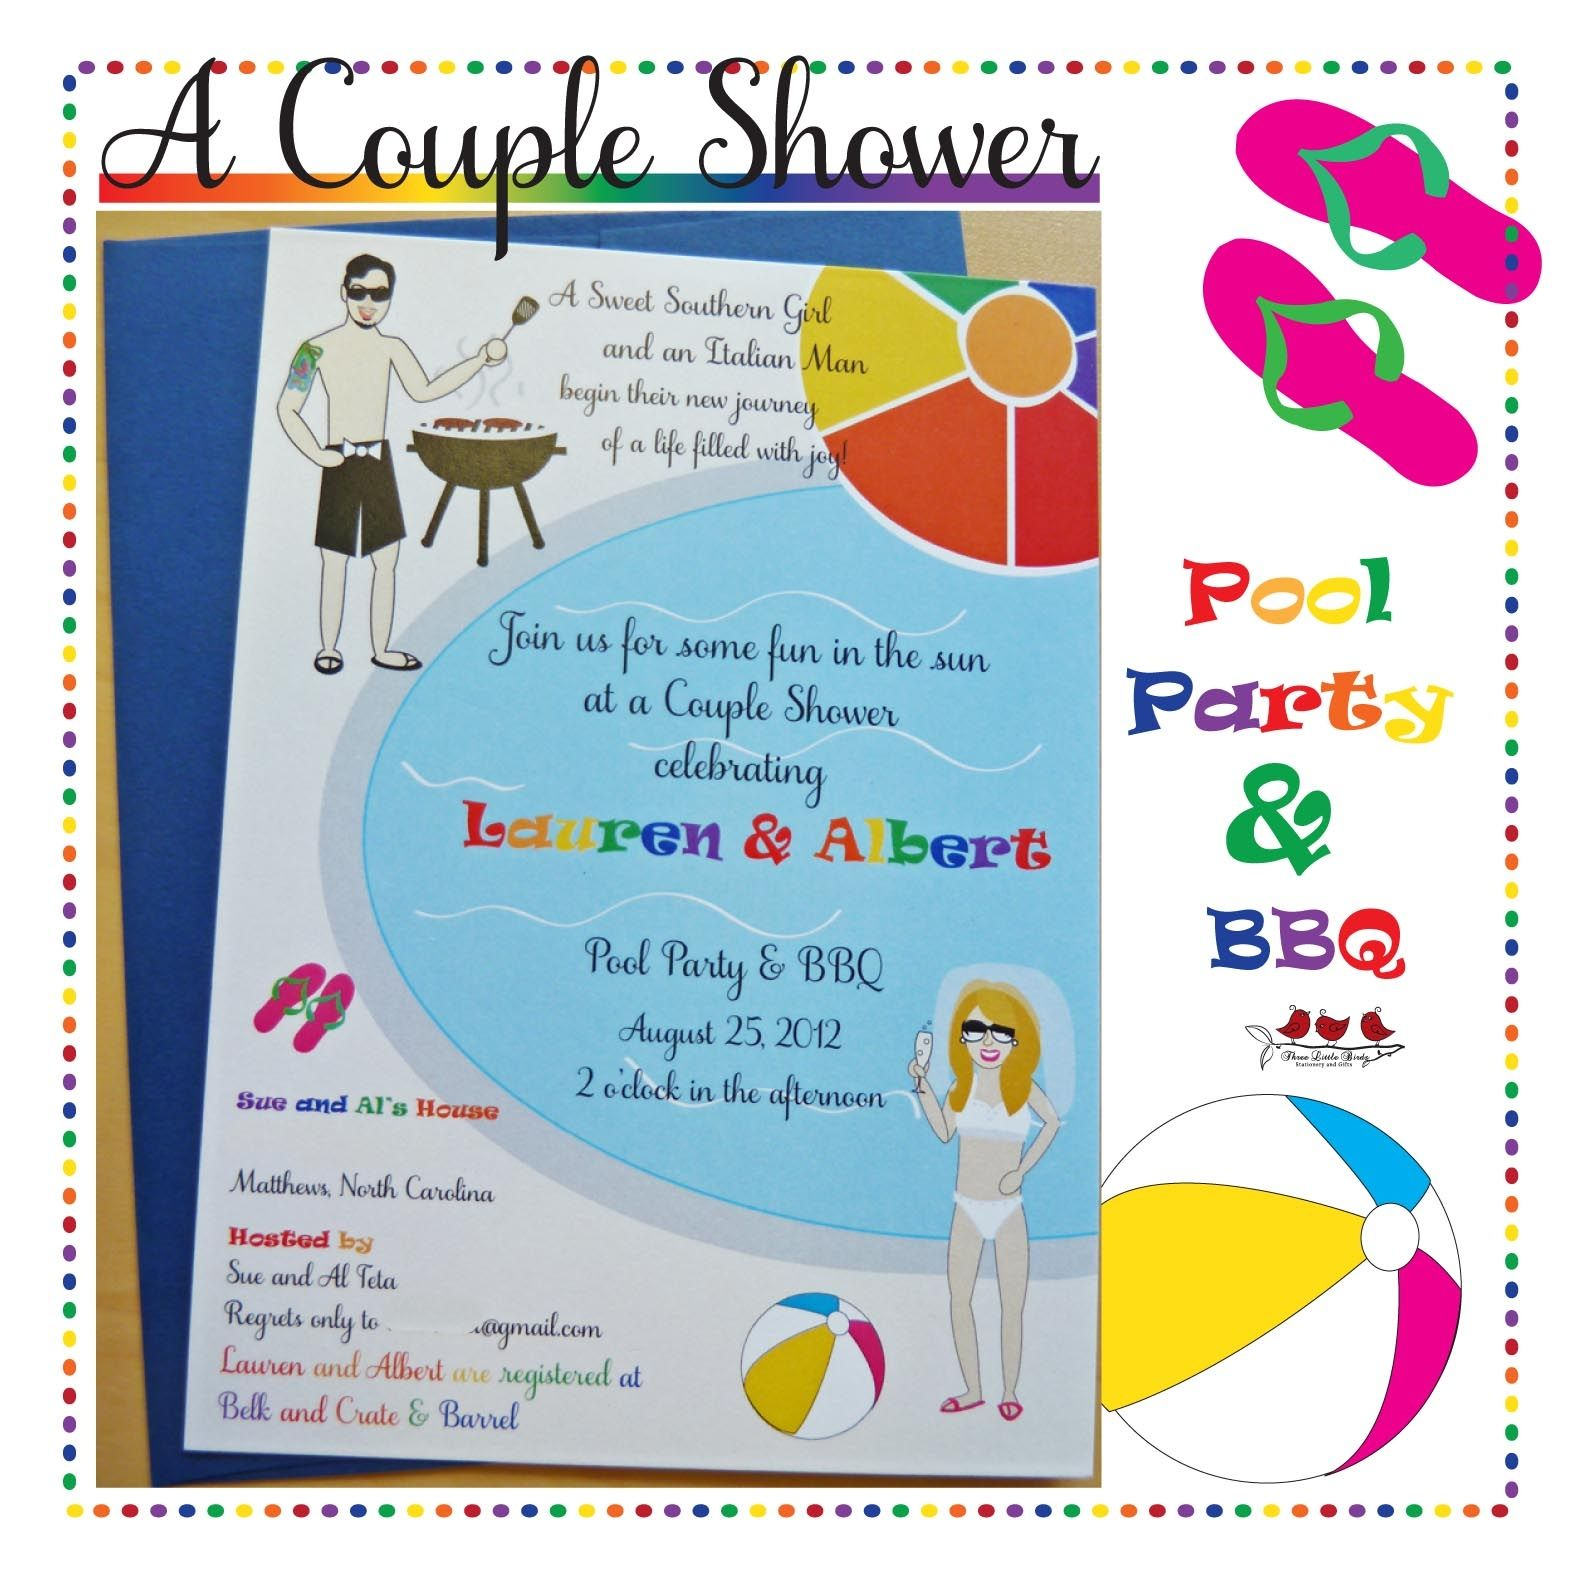 Baby Shower Pool Party Invitation Wording | http://atwebry.info ...